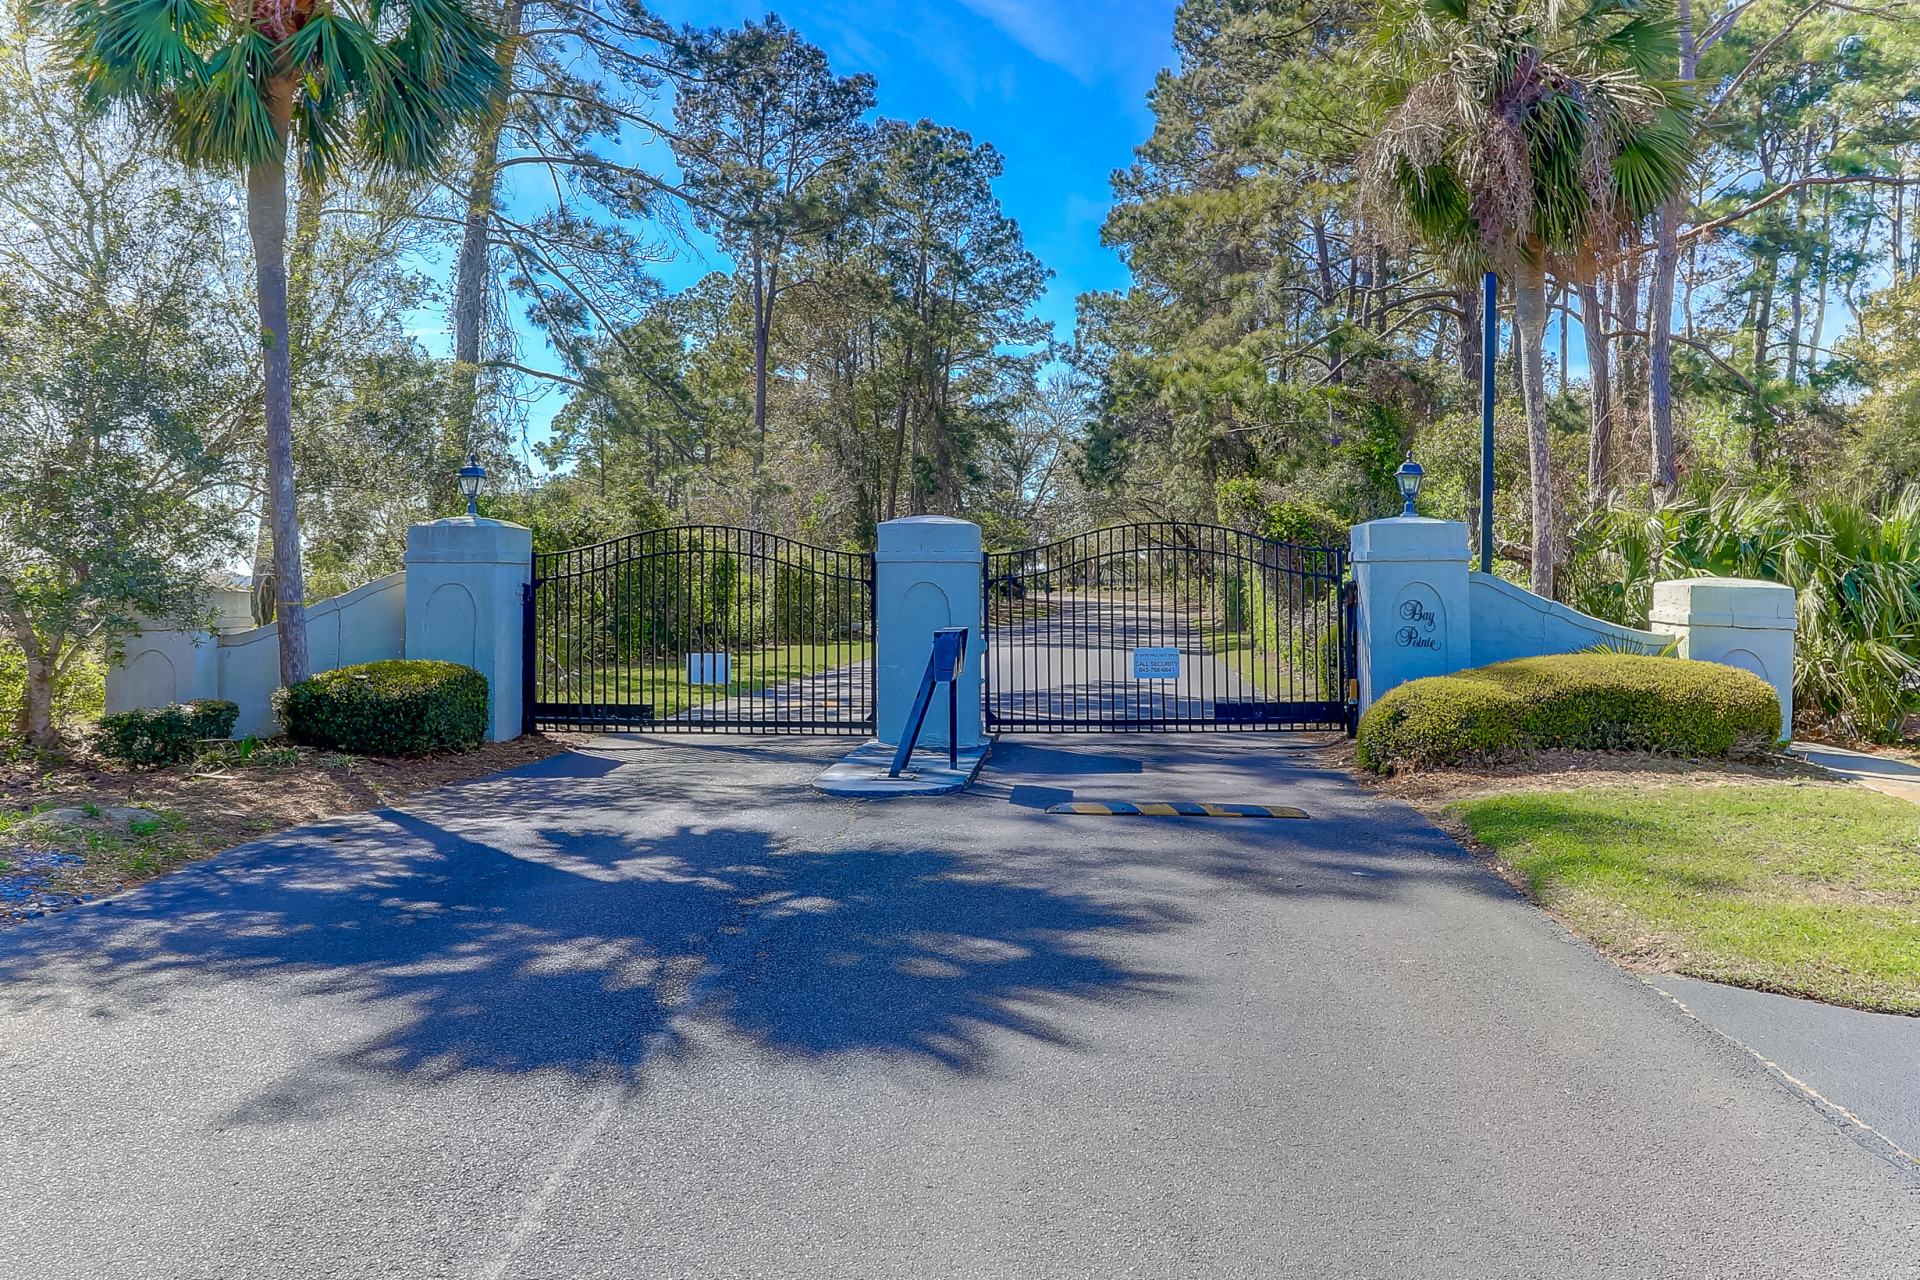 Bay Pointe is a quiet, peaceful gated community